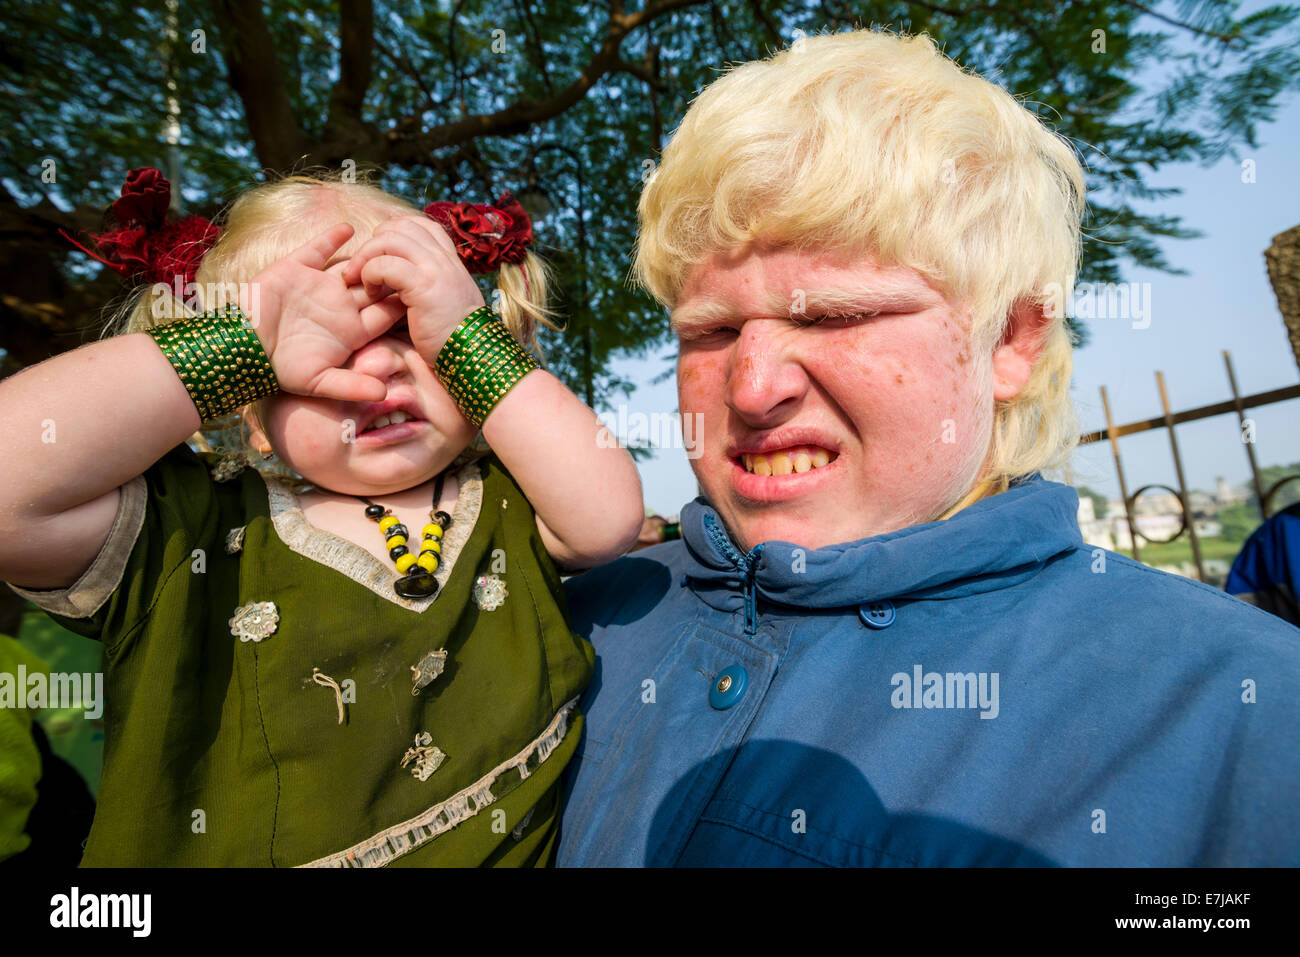 Two albinos covering and closing their sensitive eyes from the sunlight, Bhavnagar, Gujarat, India - Stock Image